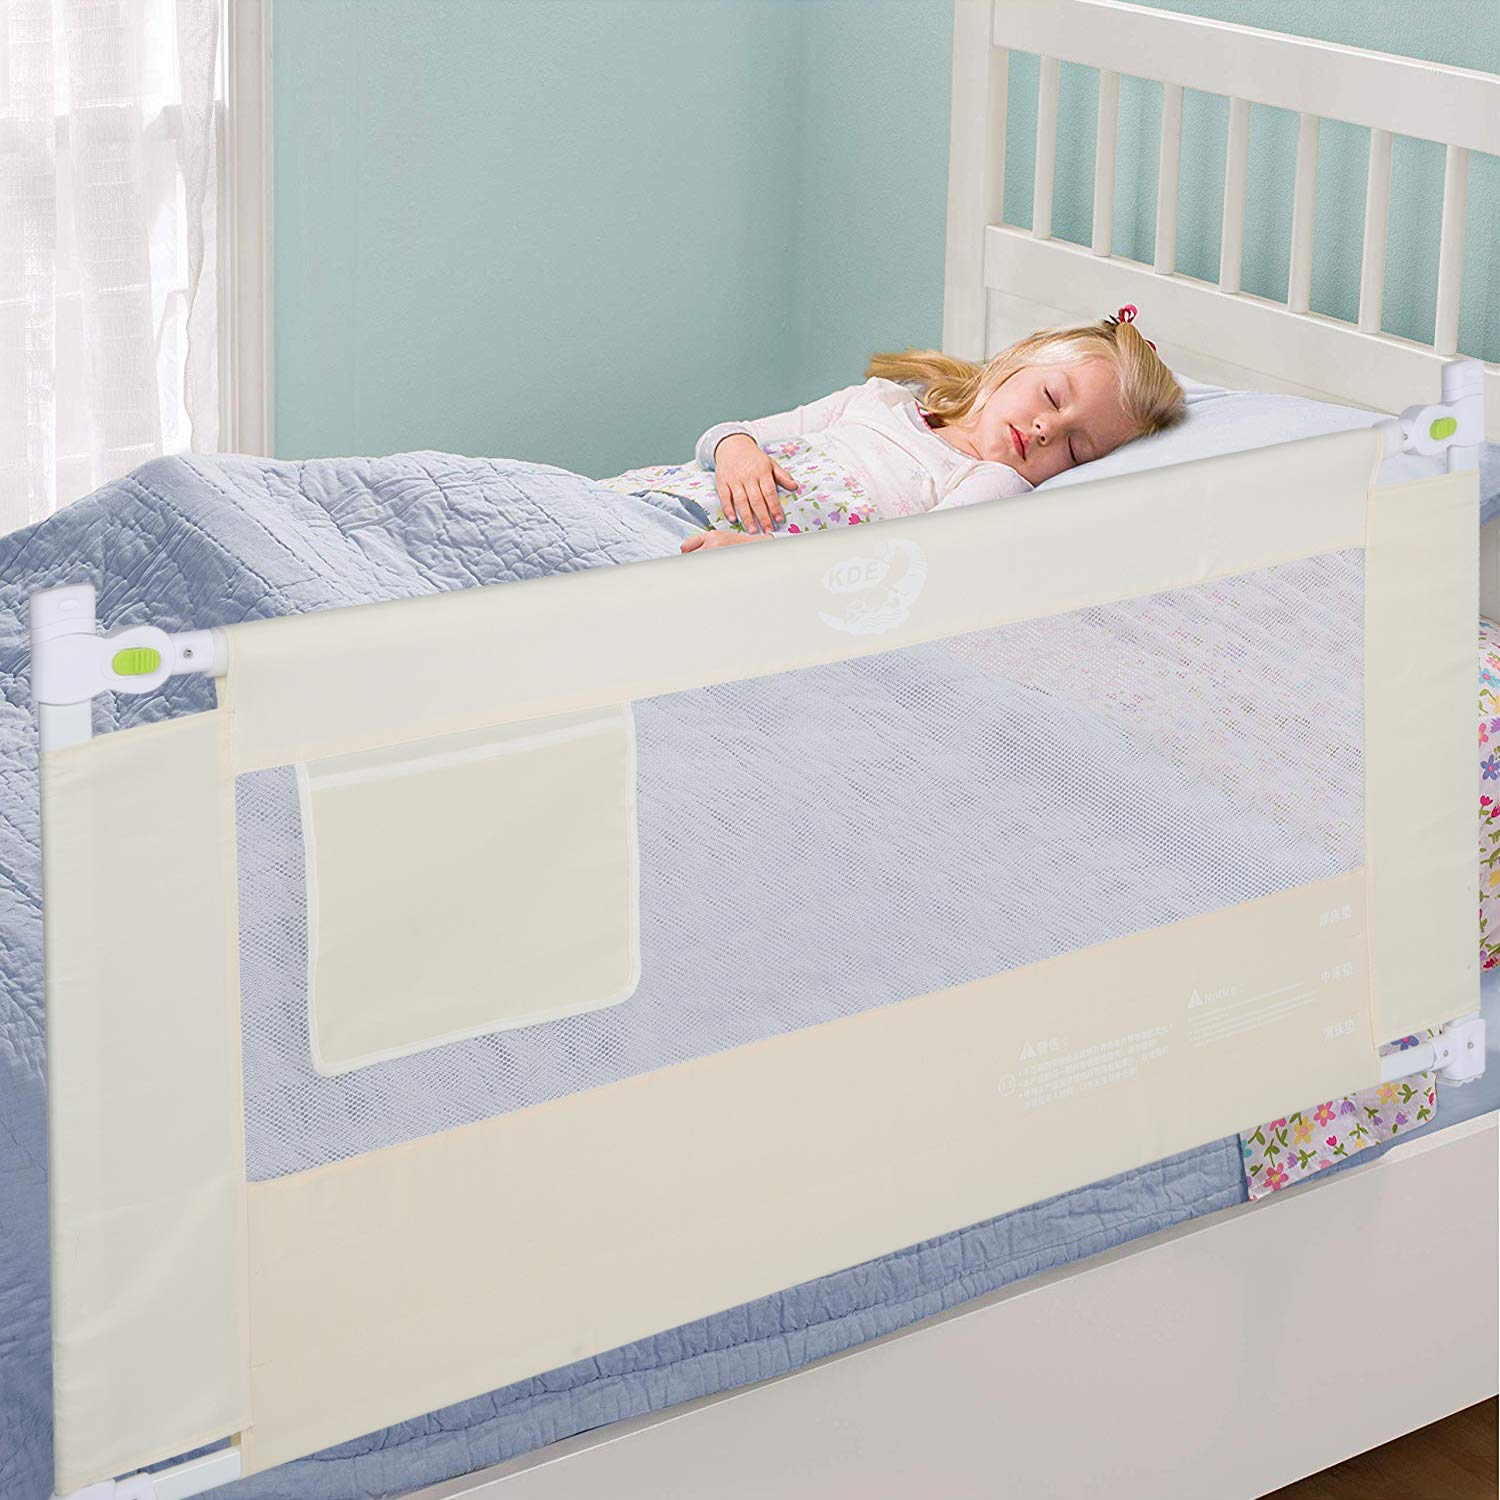 Bed Rail Foldable Toddlers Safety Bed Rail Buckle with Lockable for Toddler Baby and Children Beige 2m